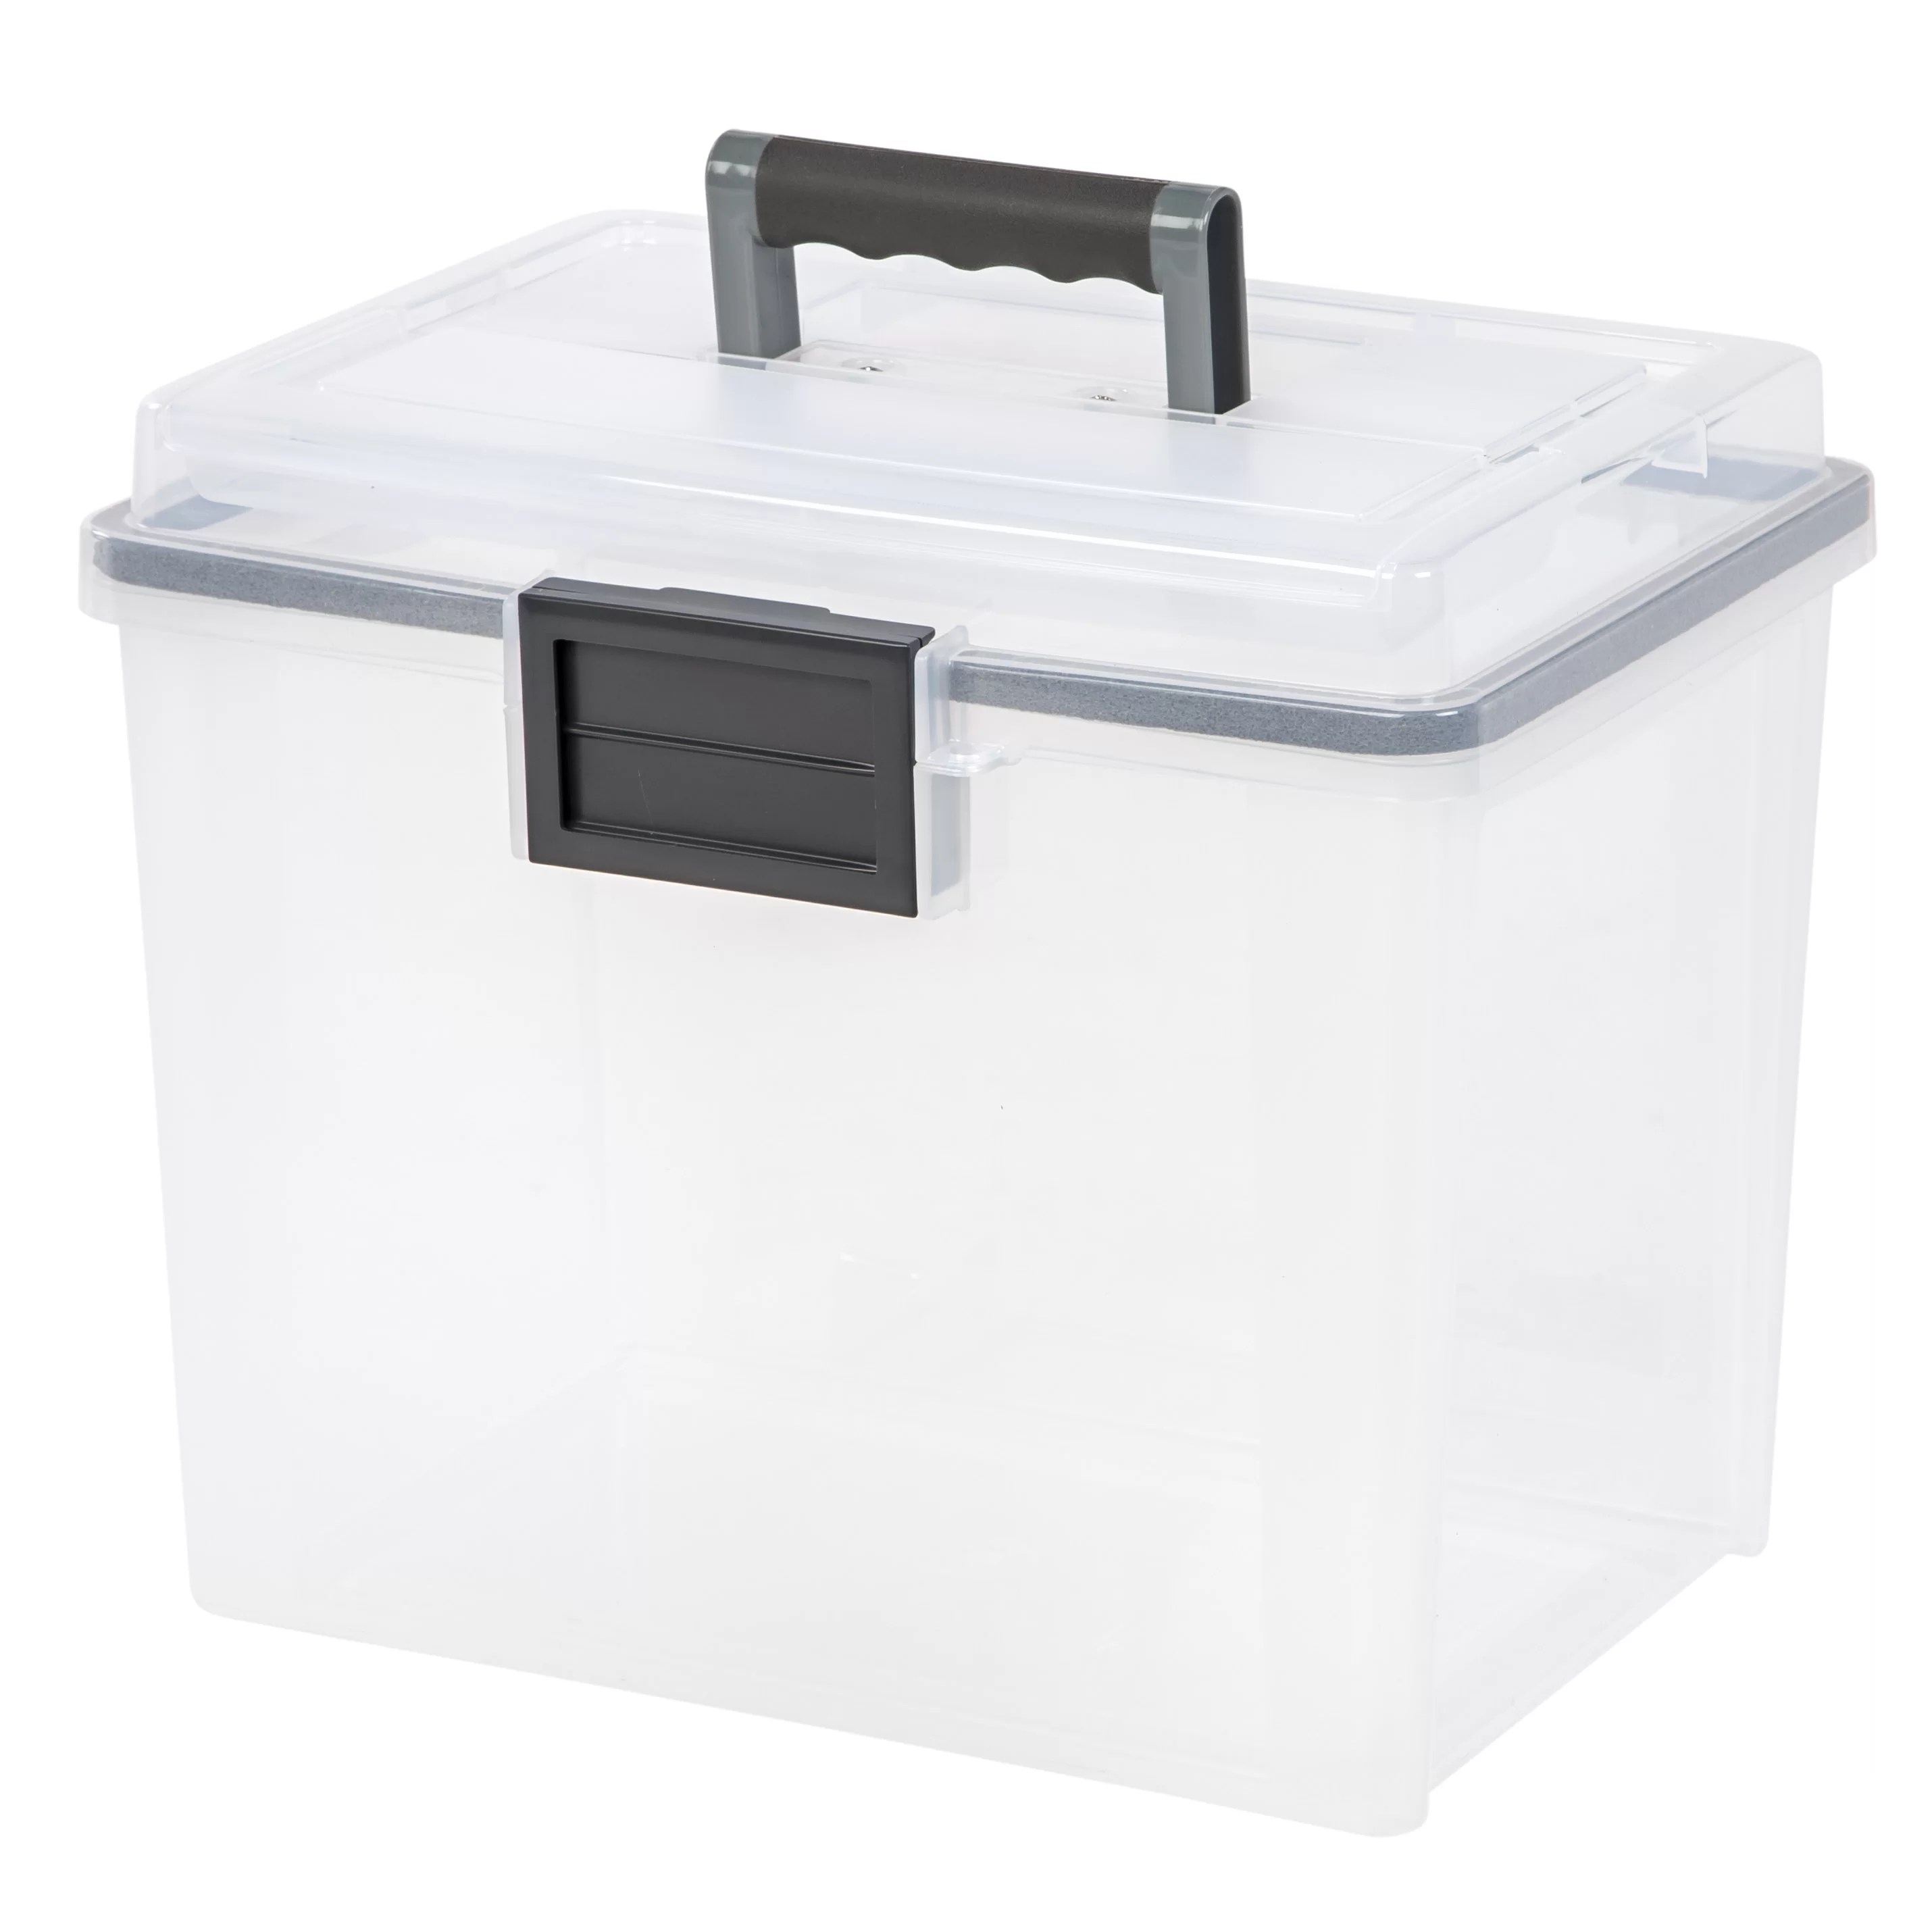 File Box Iris Letter Size Portable Weathertight File Box And Reviews